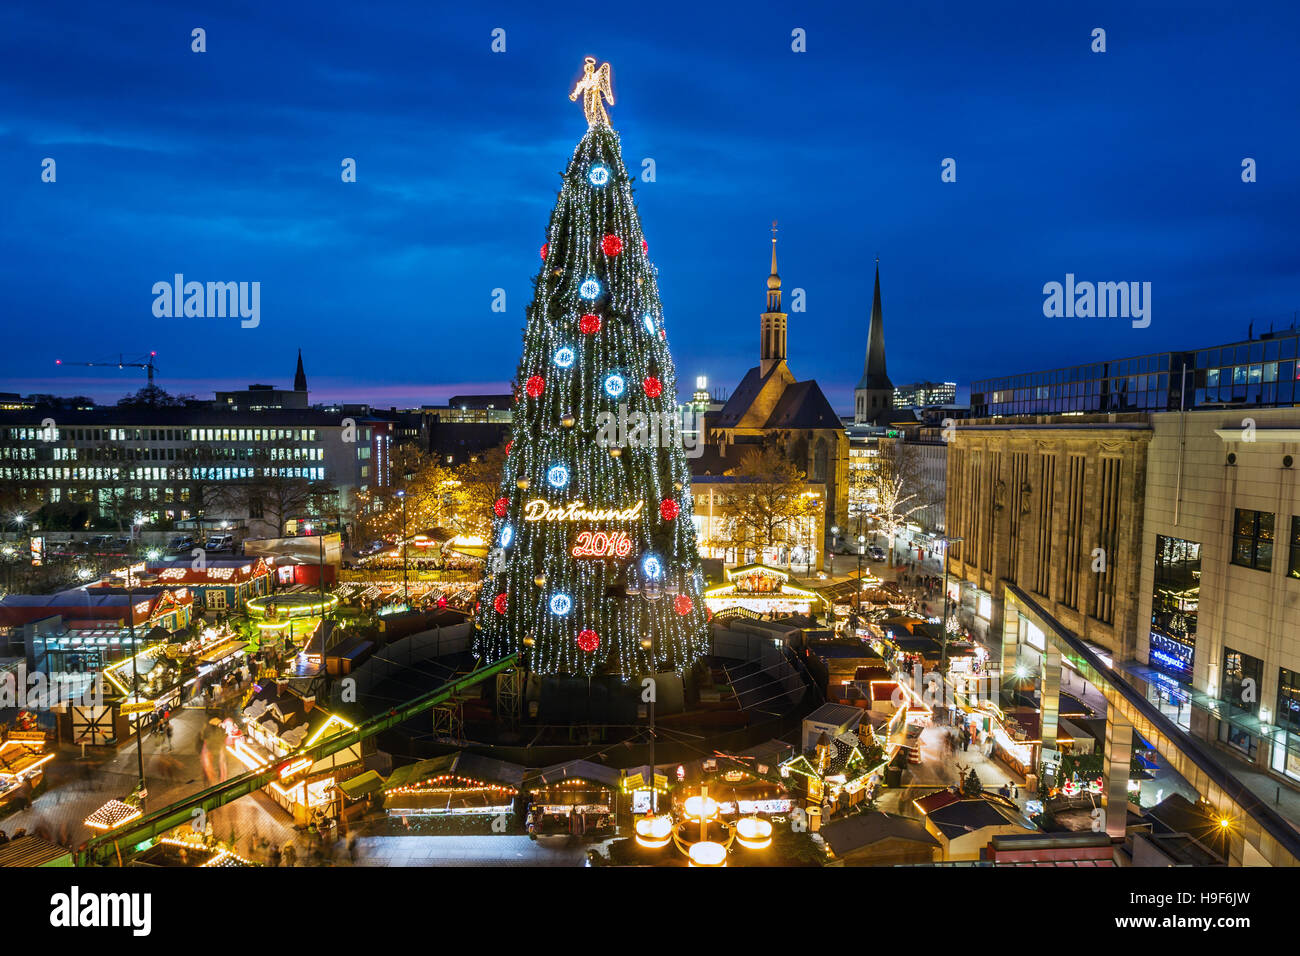 Dortmund / Germany, Nov. 22th. 2016 - The world's largest Christmas tree - Made of 1700 red spruce and with - Stock Image